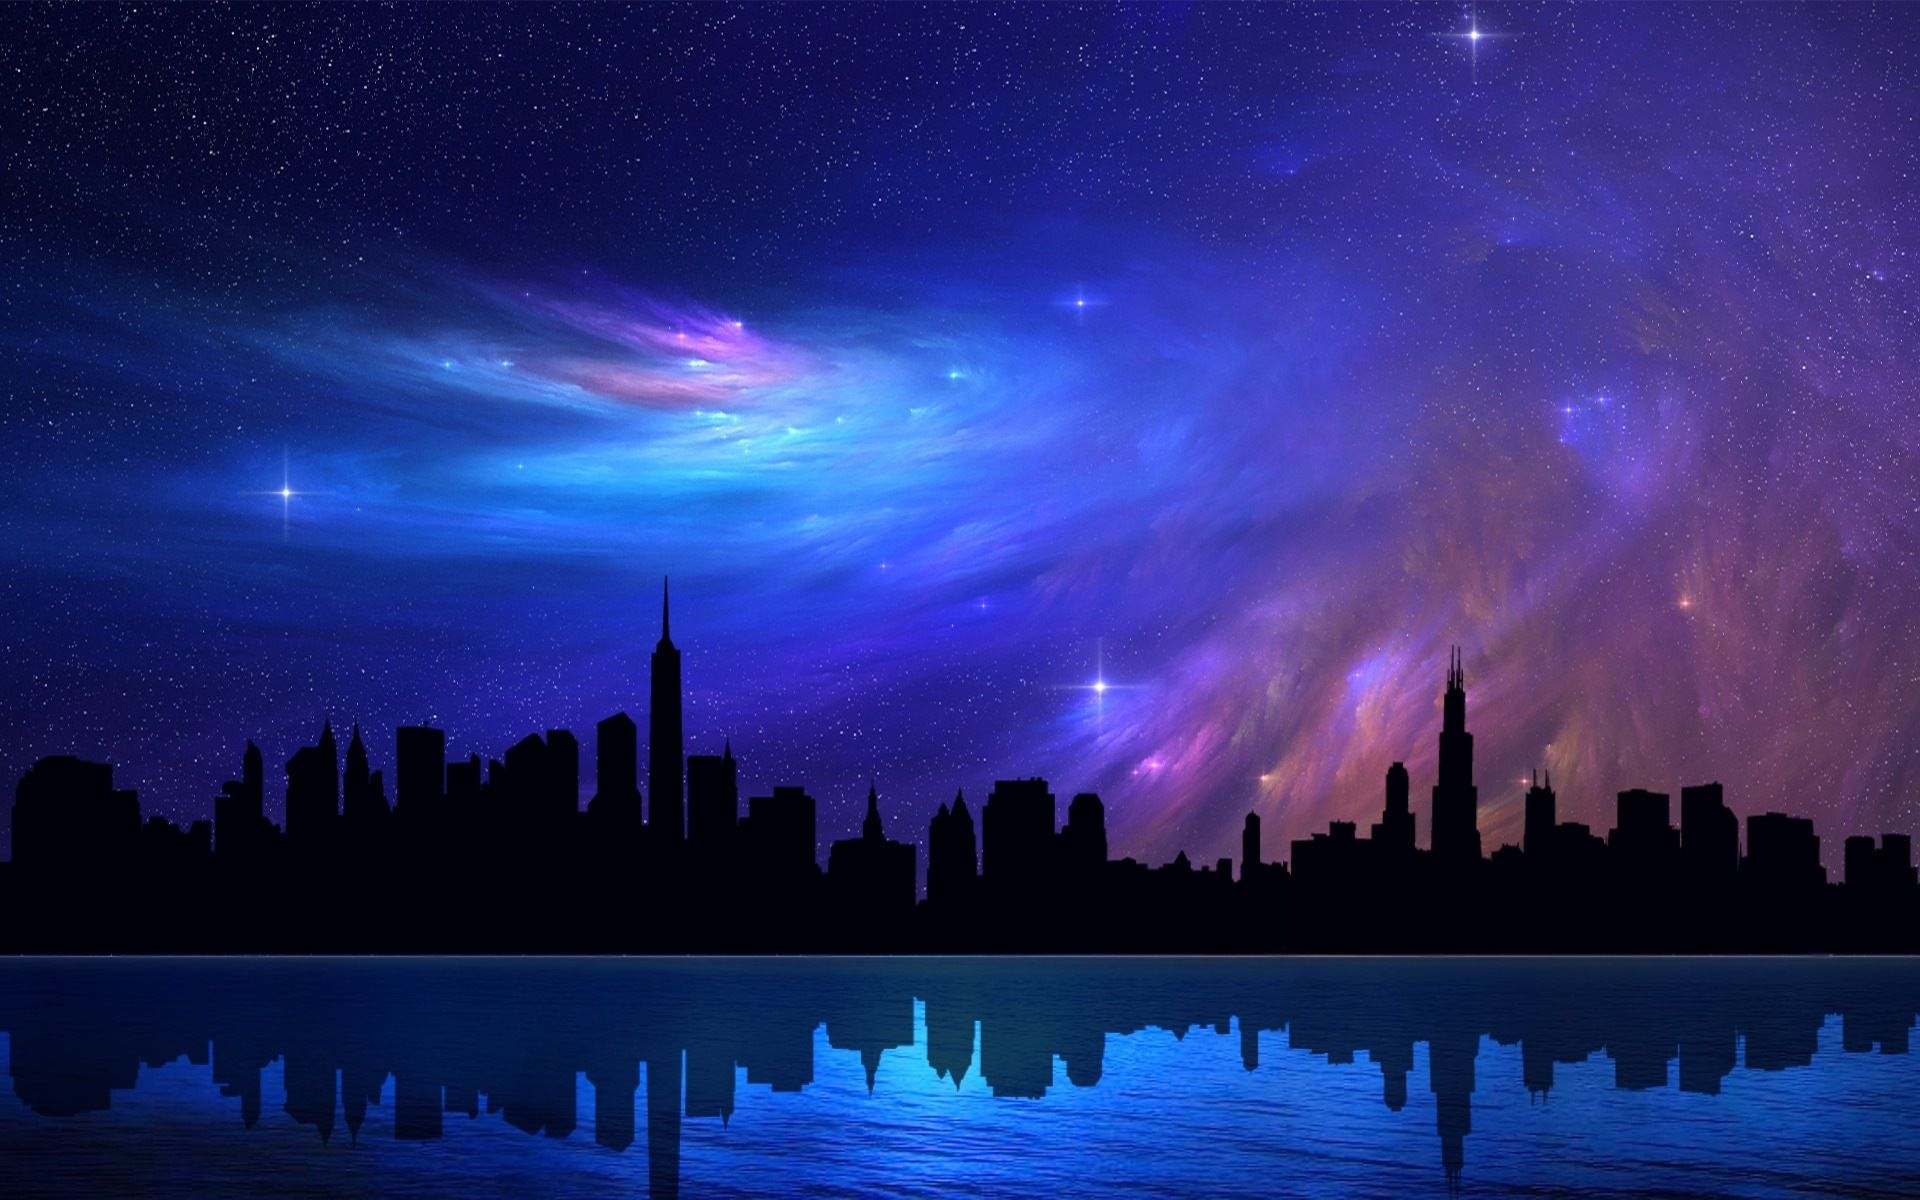 beautiful wallpapers | beautiful night sky wallpaper cool #20666s5m